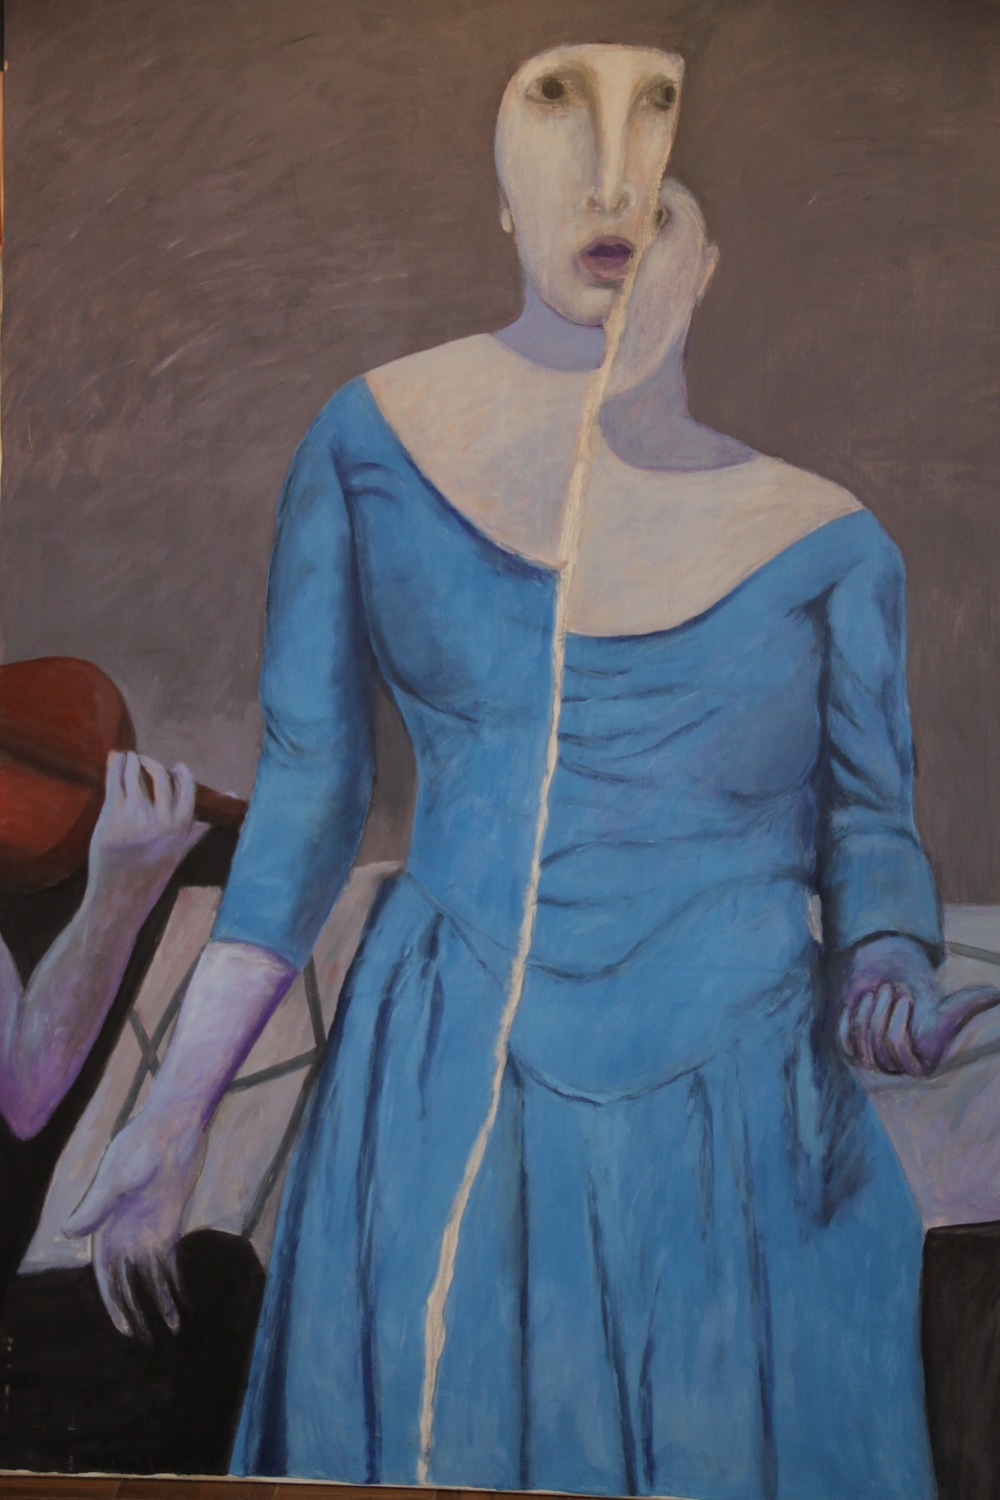 Ahmed Morsi, Soprano, 1997, Acrylic on canvas, 221 x 153 cm.